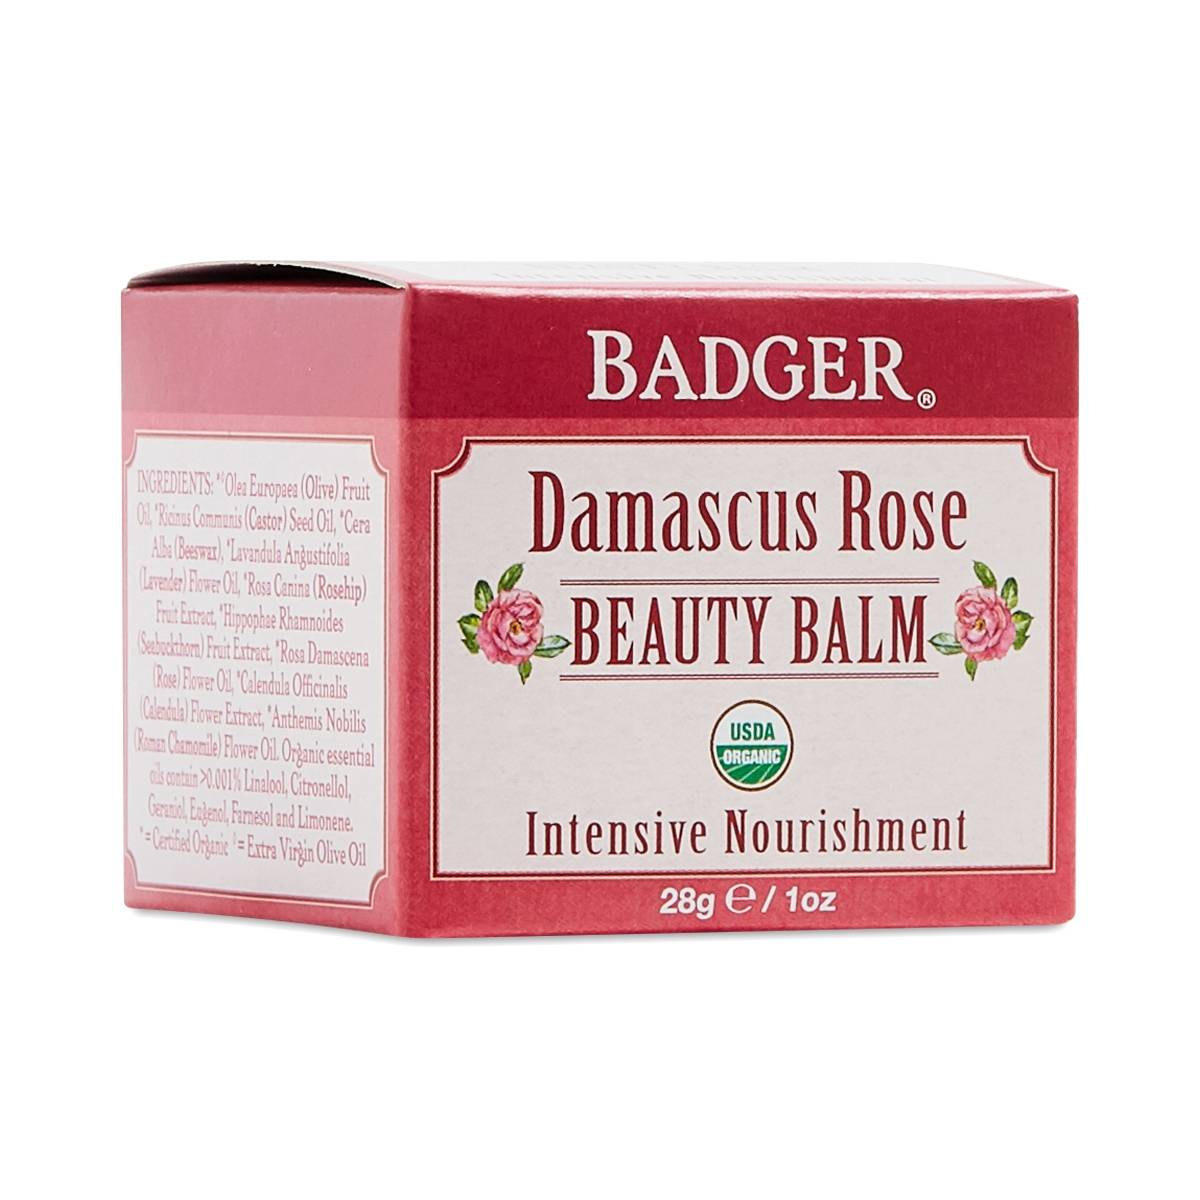 Damascus Rose Beauty Balm by badger #16